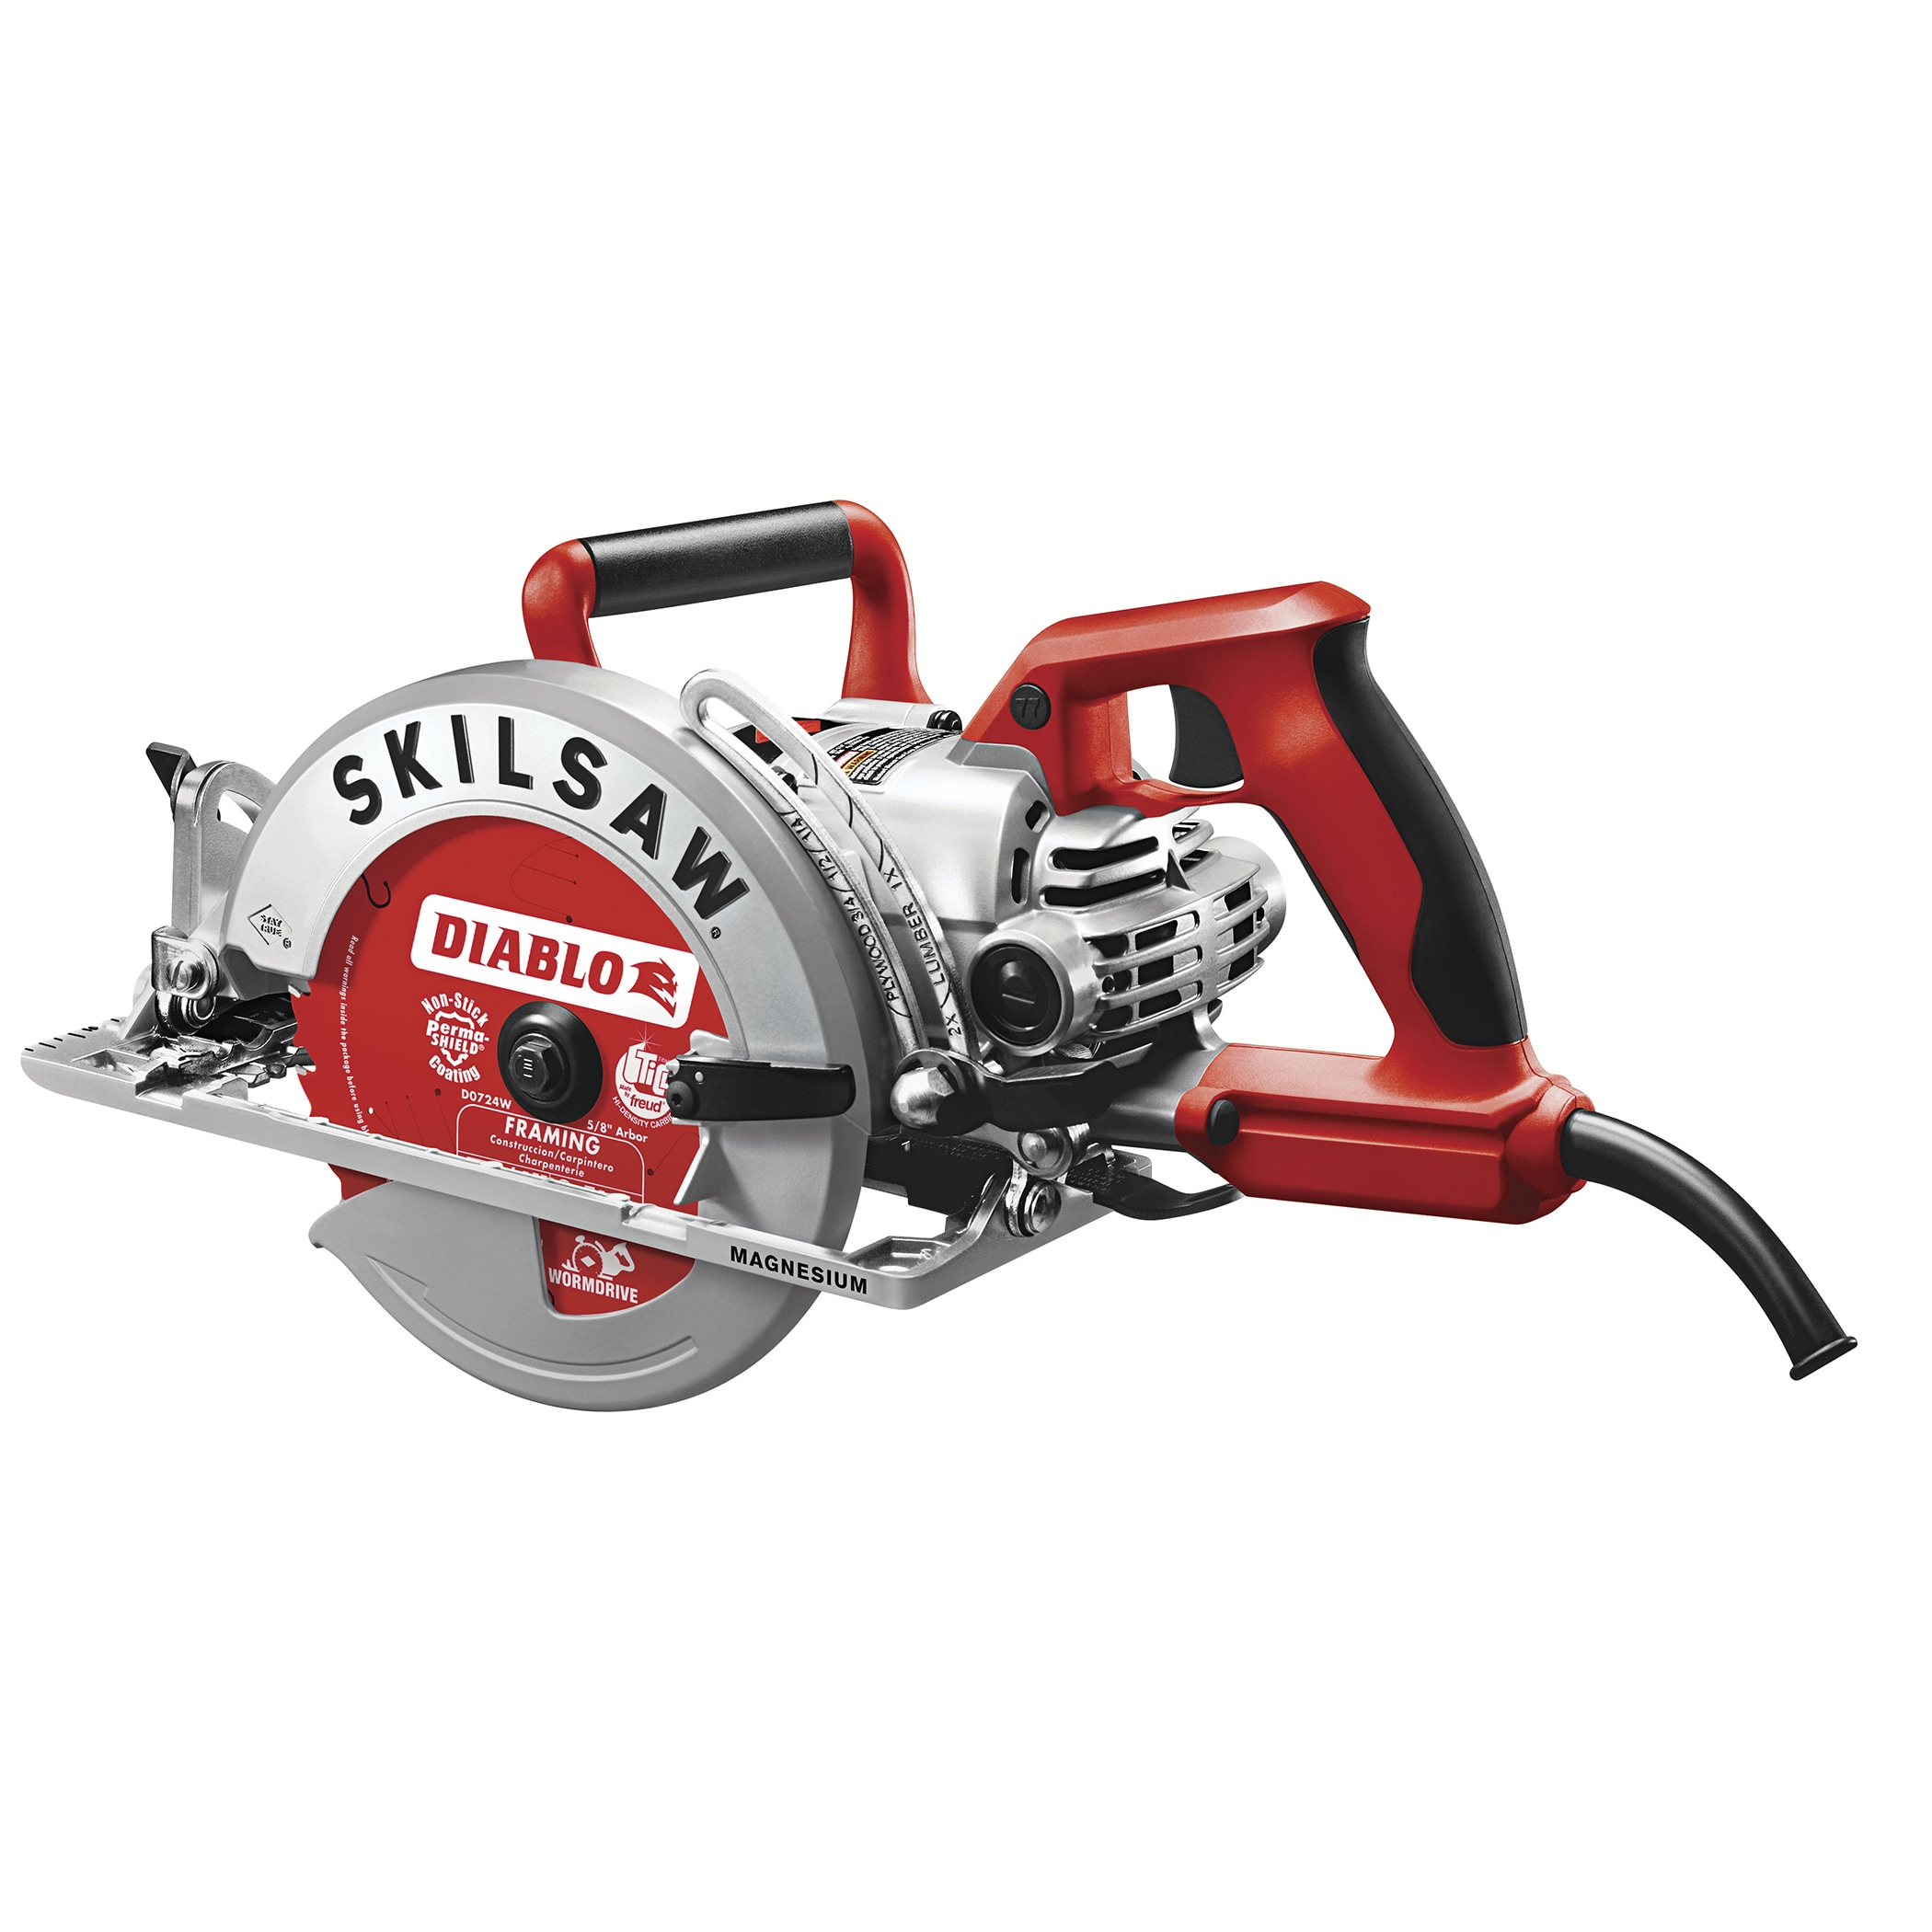 "Skil SPT77WML-22 7-1/4"" Lightweight Worm Drive With Diabl..."